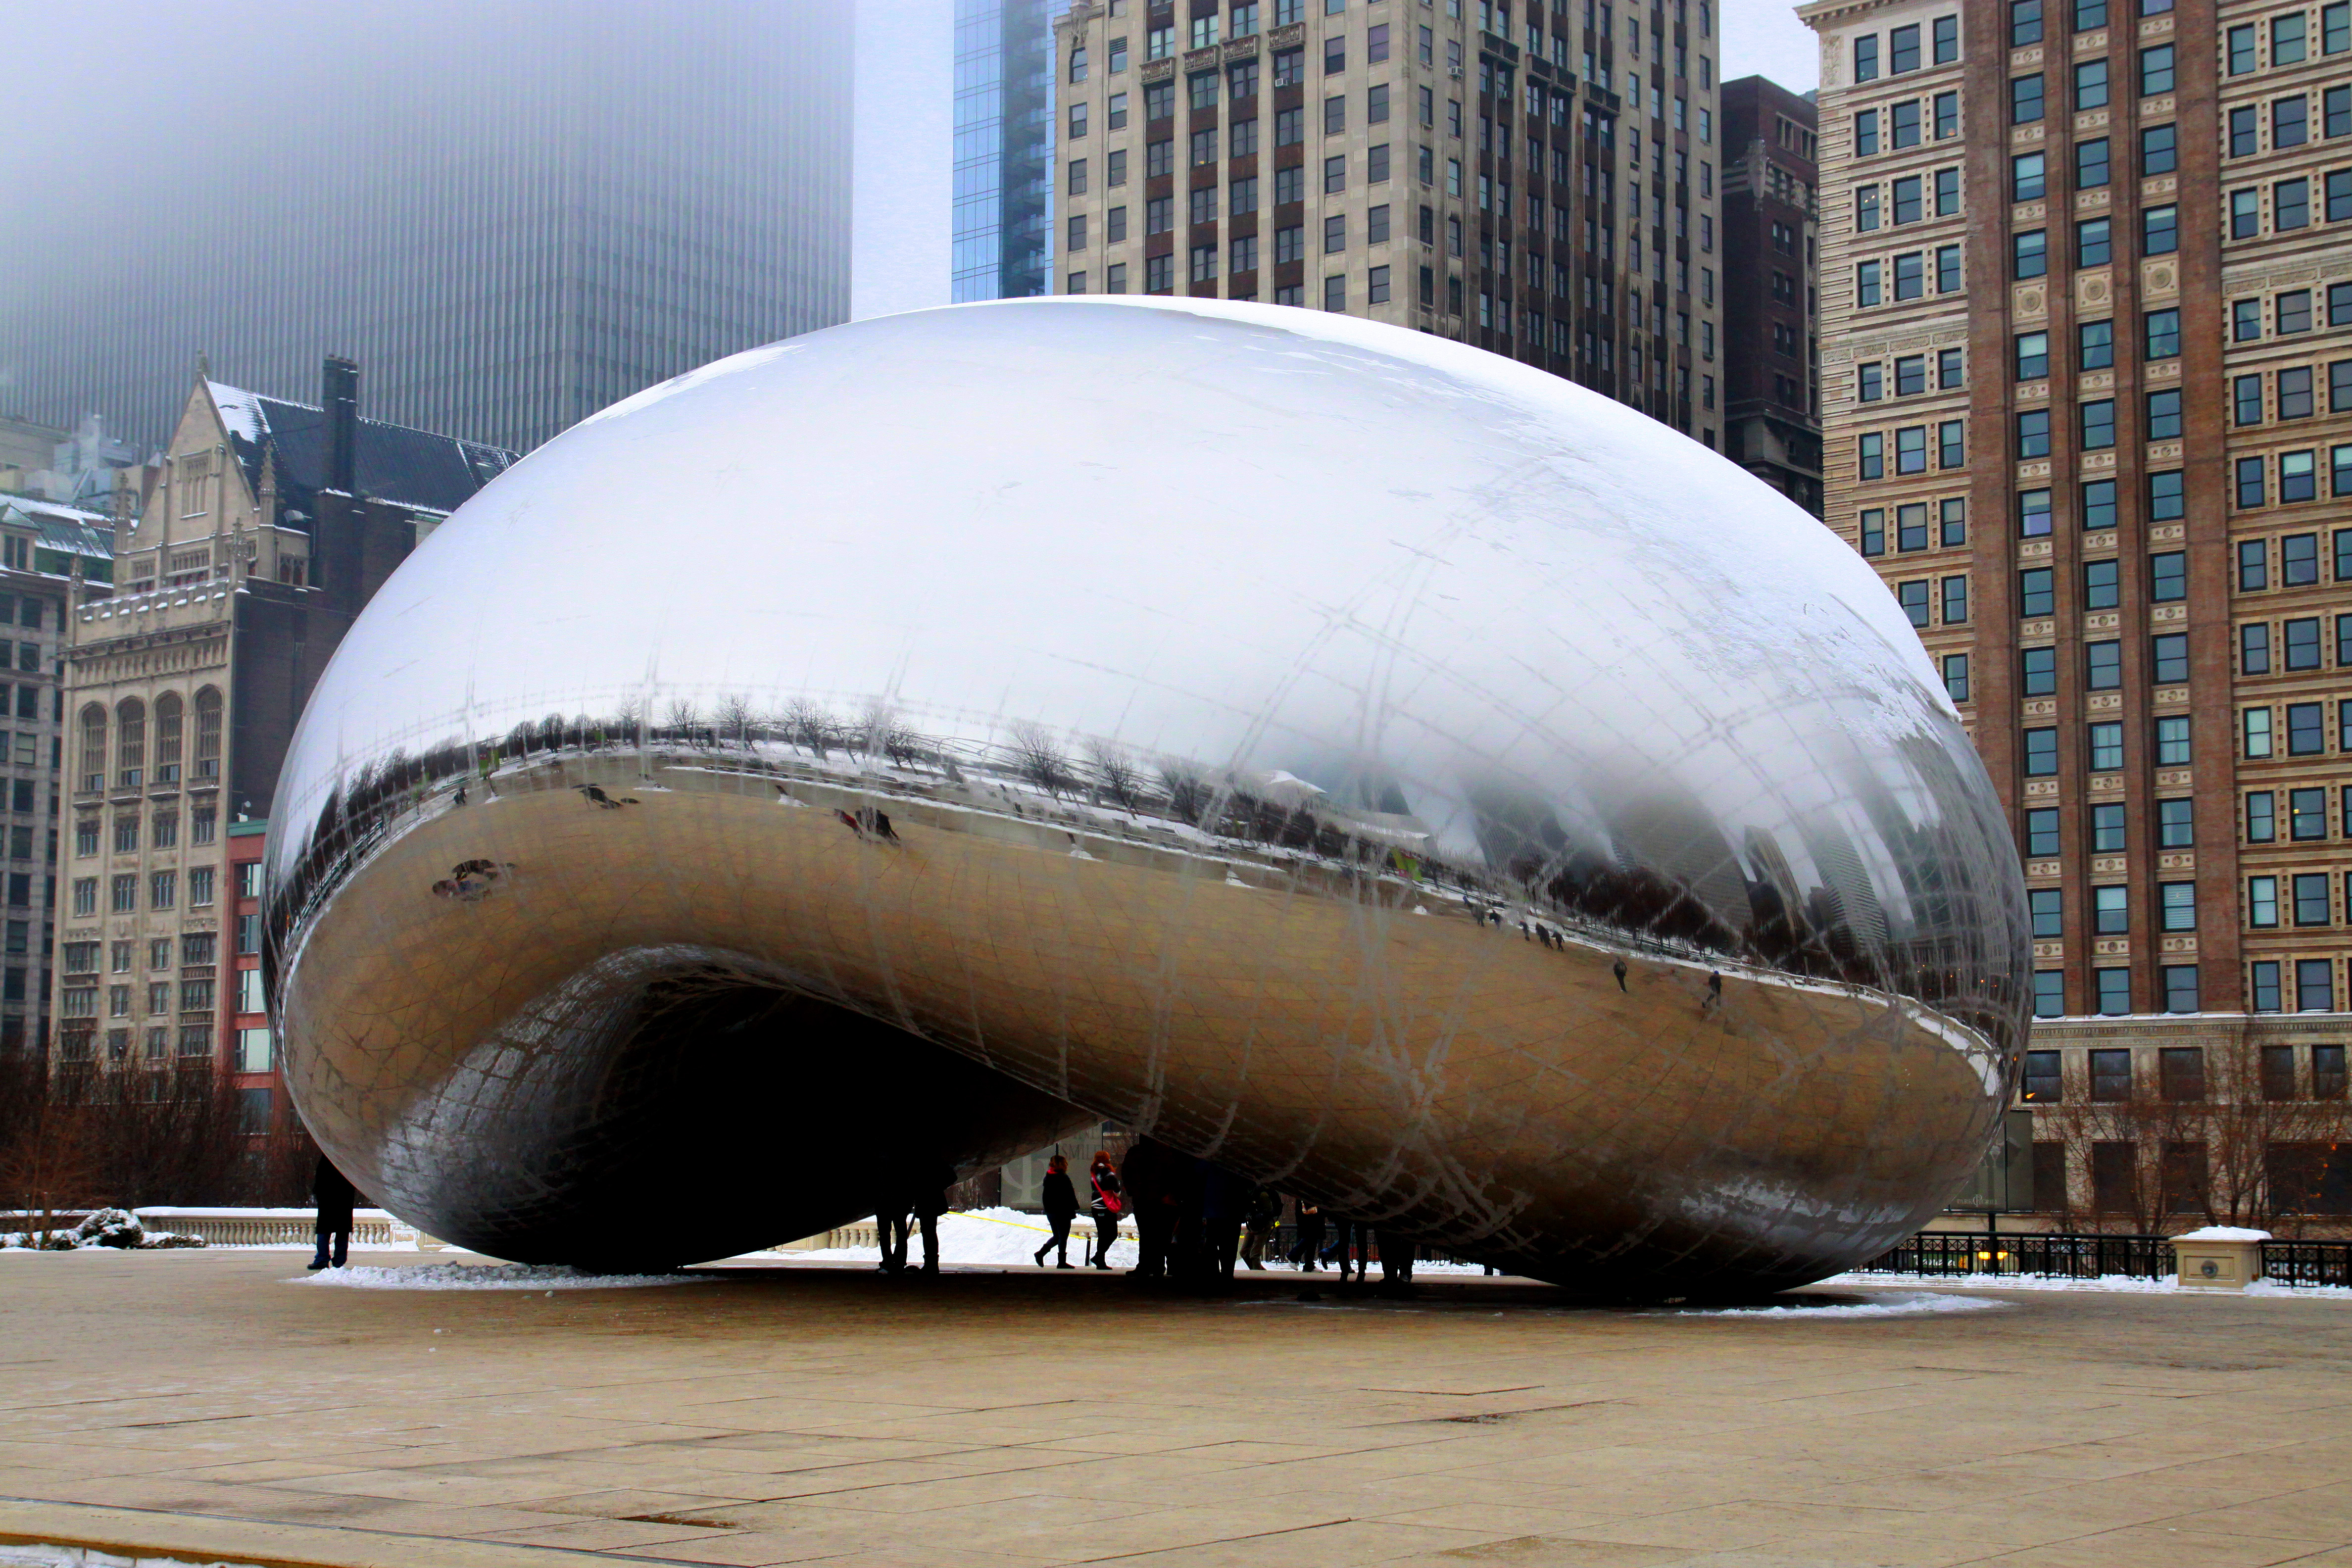 Anish Kapoor's Cloud Gate, on a winter and foggy afternoon in Chicago, Illinois on January 22, 2012.